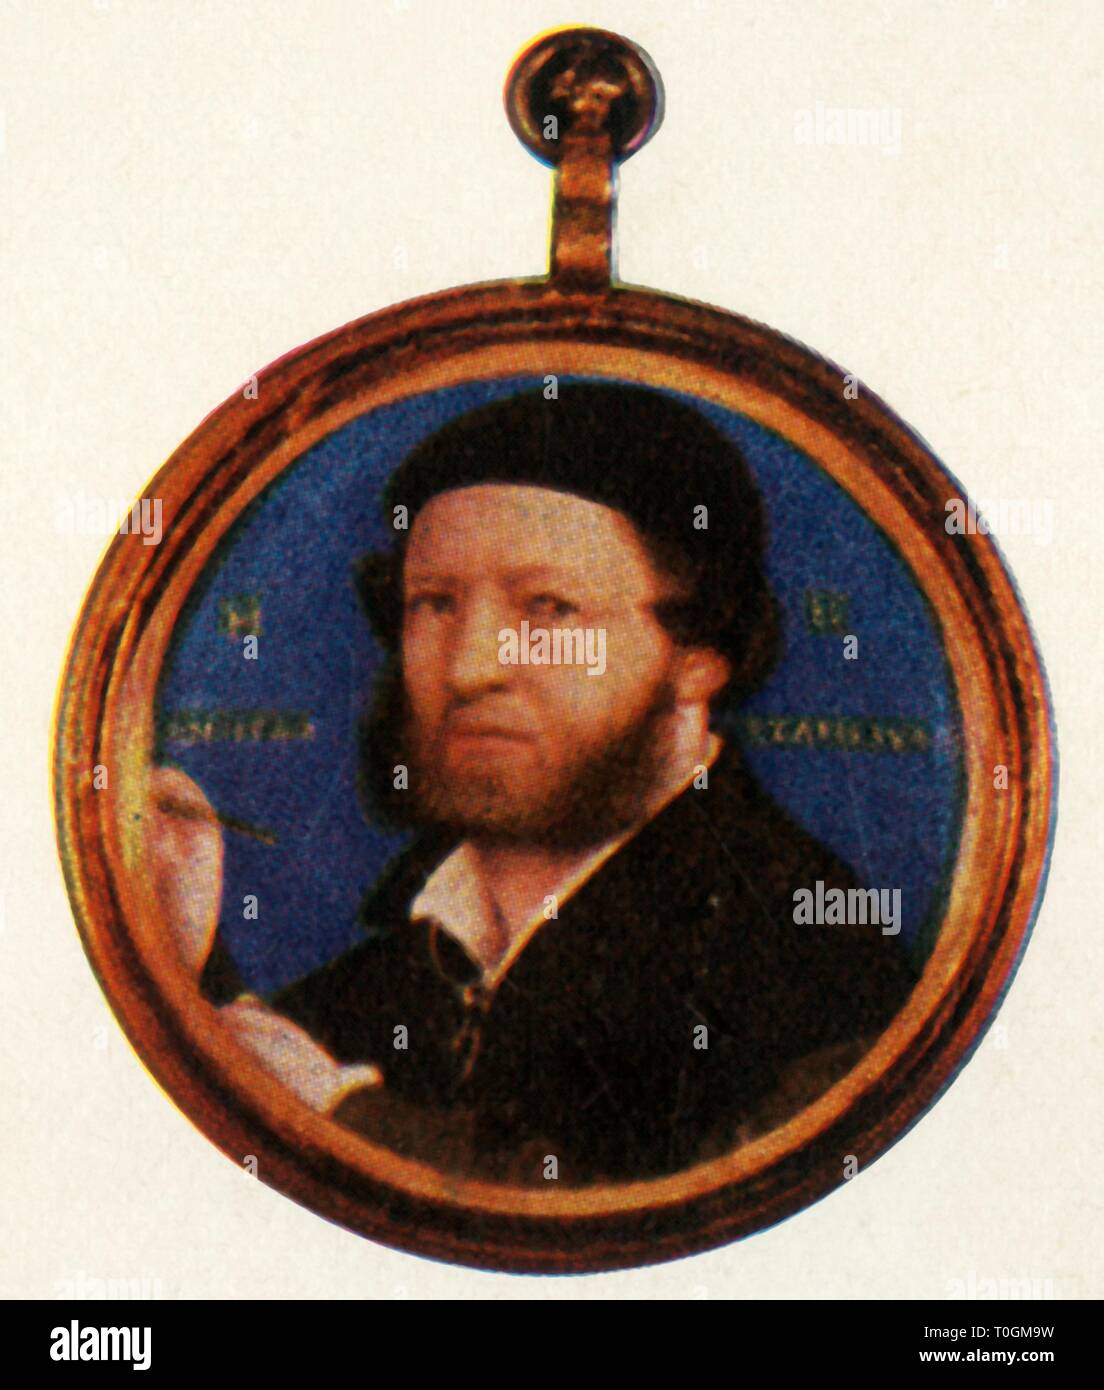 """Hans Holbein, mid-late 16th century, (1947).Portrait of German artist Hans Holbein the Younger (1497-1543), court painter to King Henry VIII of England. After a miniature previously thought to have been a self portrait by Holbein, but now believed to be by an unknown artist, in the Wallace Collection, London. From """"The Saturday Book"""", Seventh Year, edited by Leonard Russell. [Hutchinson, St. Albans, 1947] - Stock Image"""